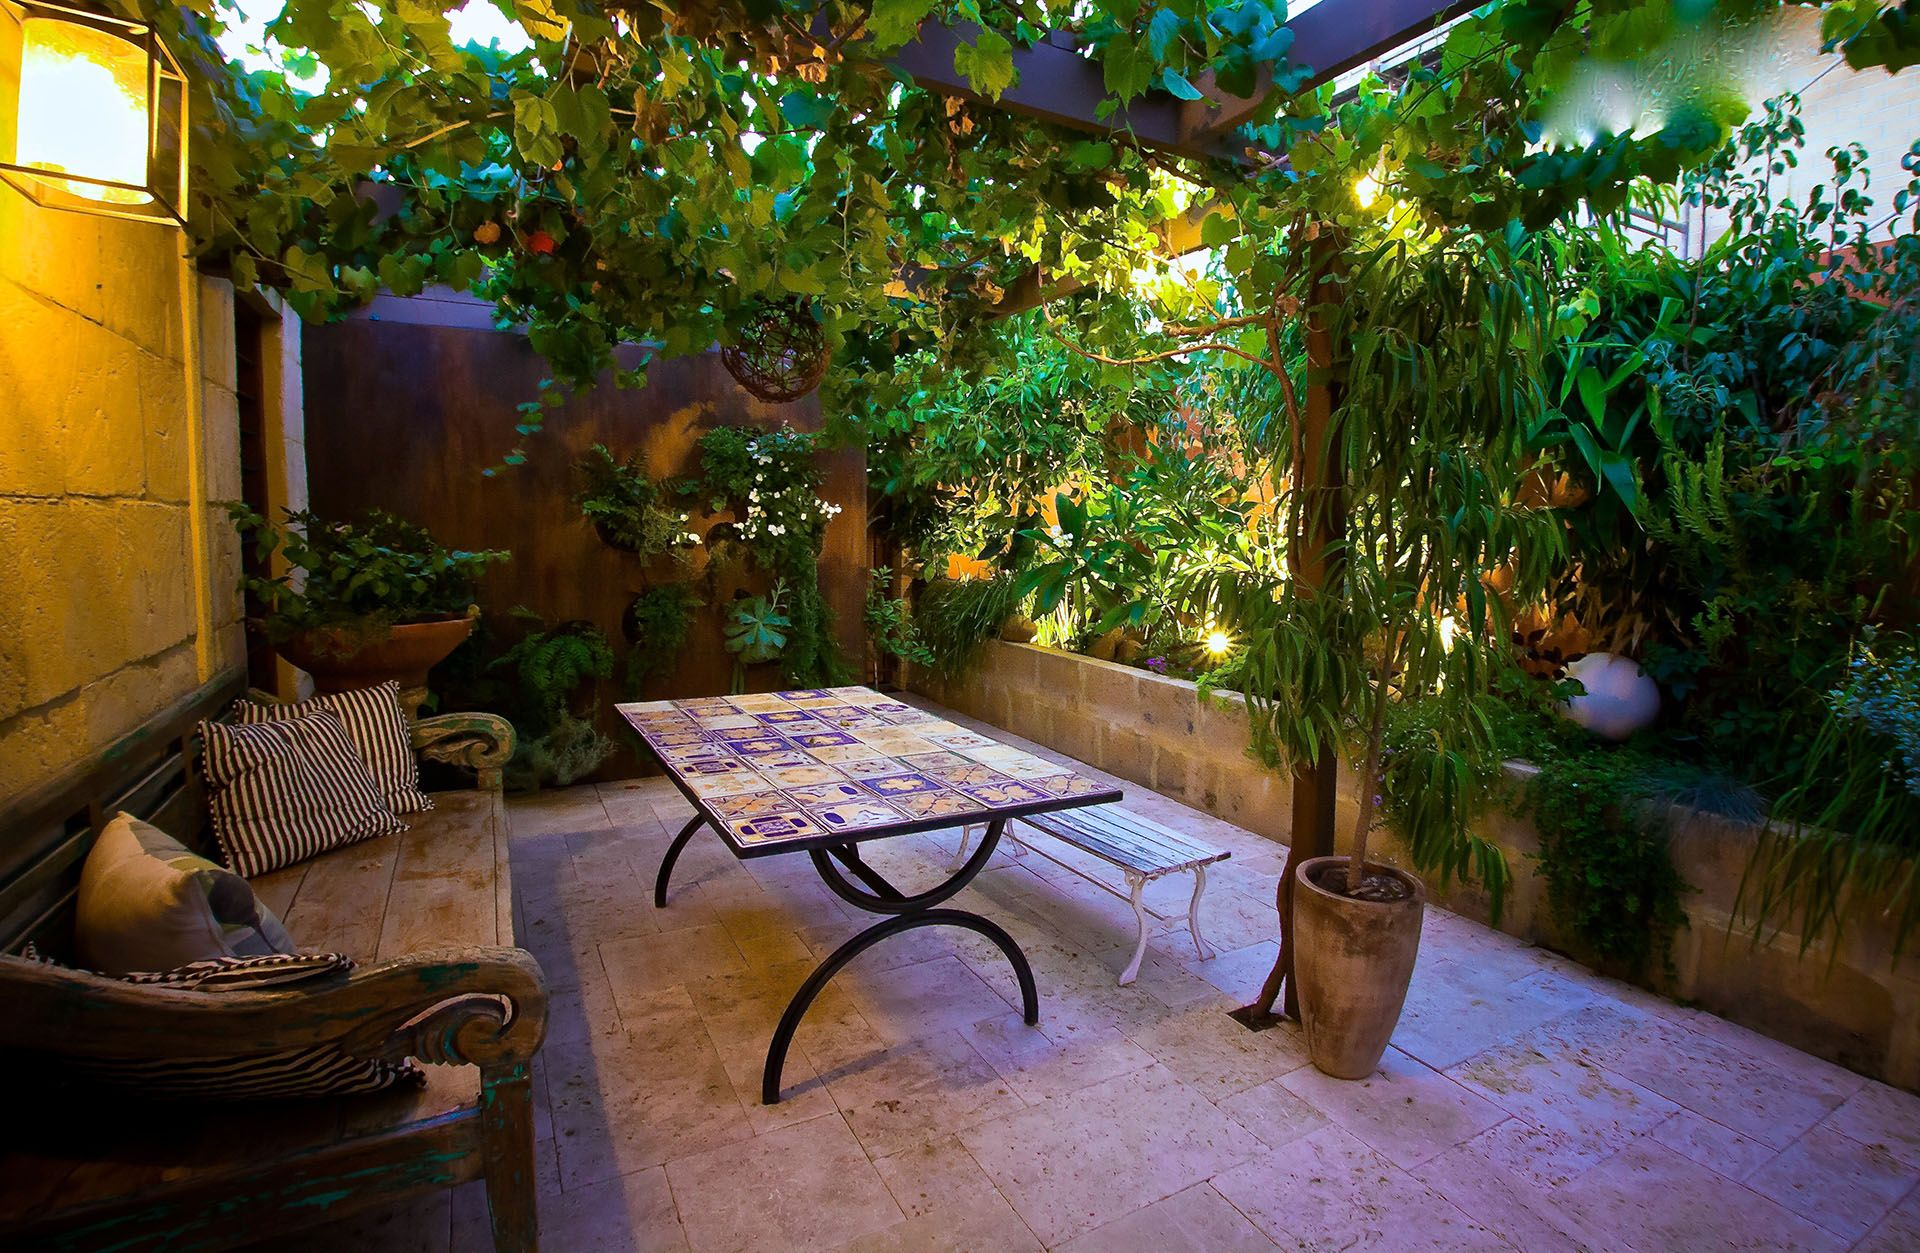 Exterior courtyard renovation mediterranean garden design for Outdoor garden ideas house